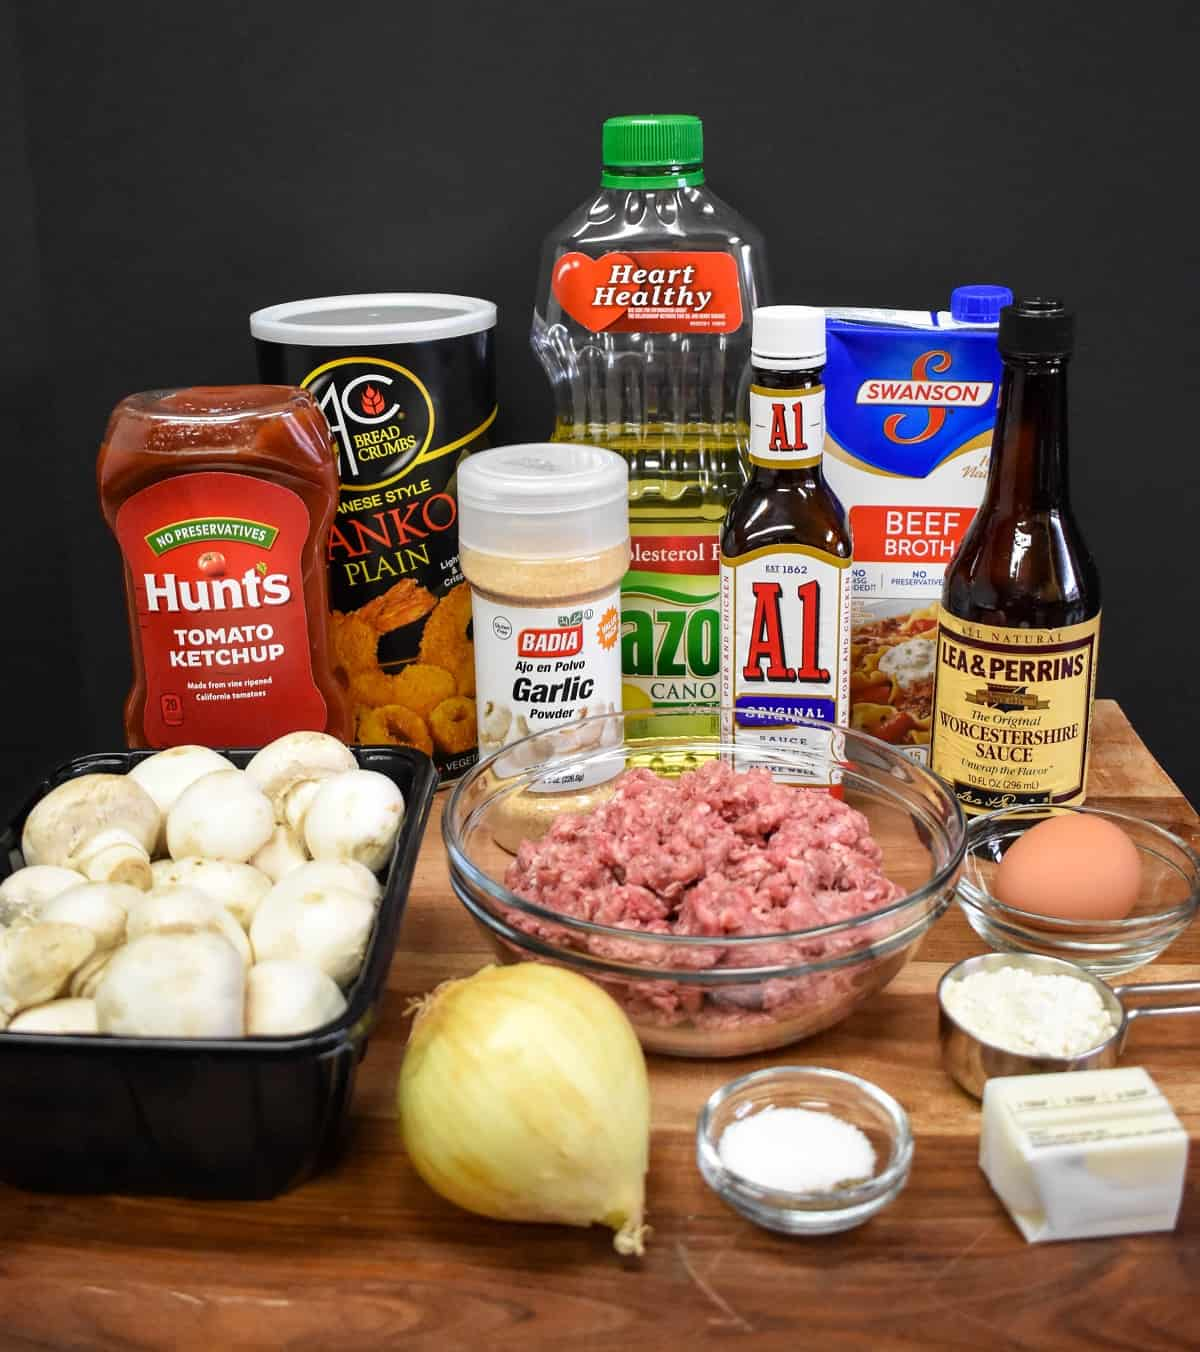 The ingredients for the Salisbury steak meatballs arranged on a large wood cutting board.